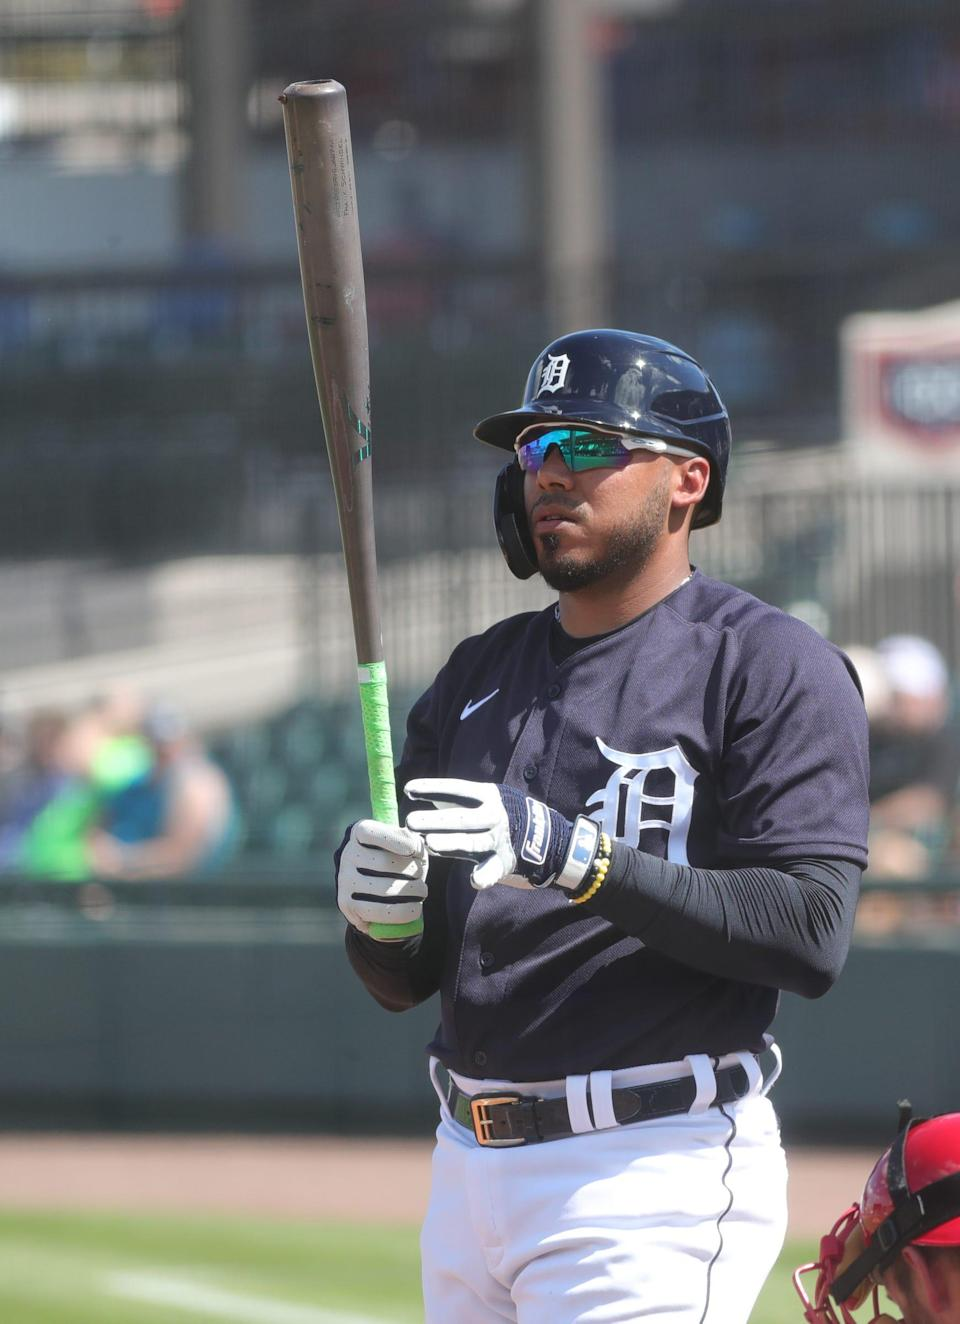 Detroit Tigers' Harold Castro bats against the Phillies during Grapefruit League action Sunday, Feb. 28, 2021 in Lakeland, Fla.